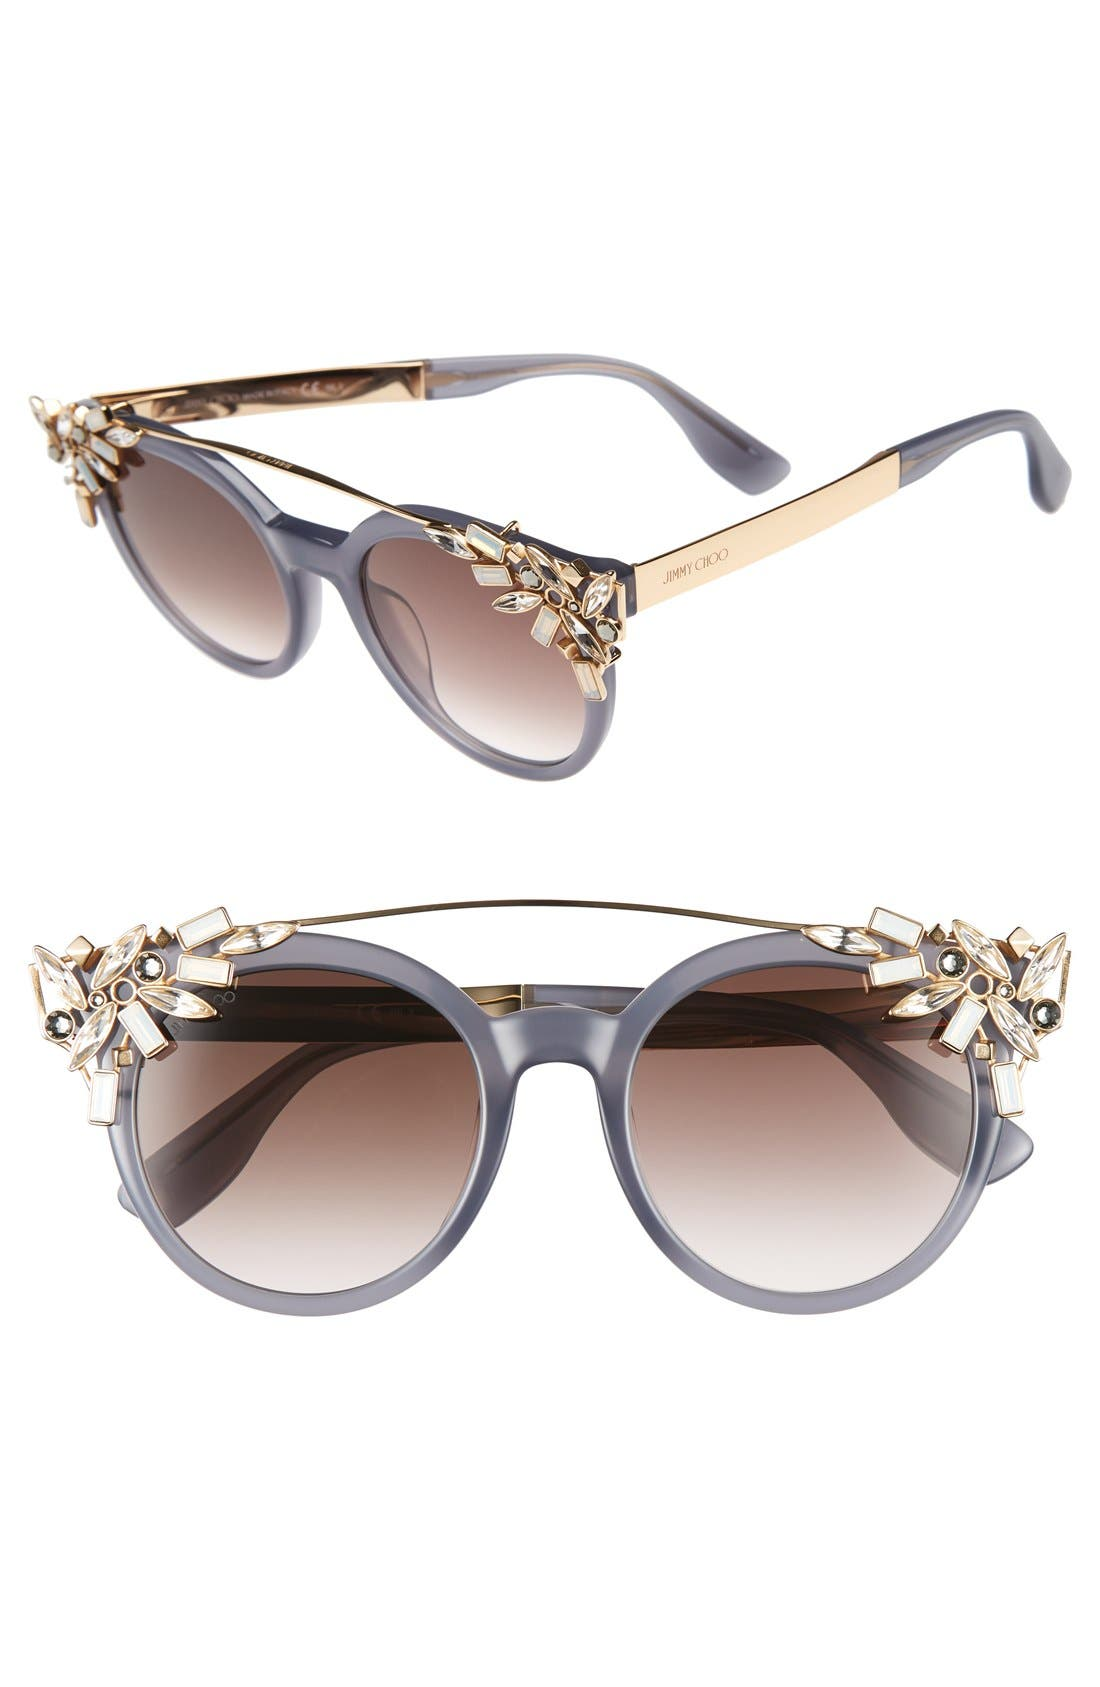 Alternate Image 1 Selected - Jimmy Choo 'Vivy' 51mm Sunglasses